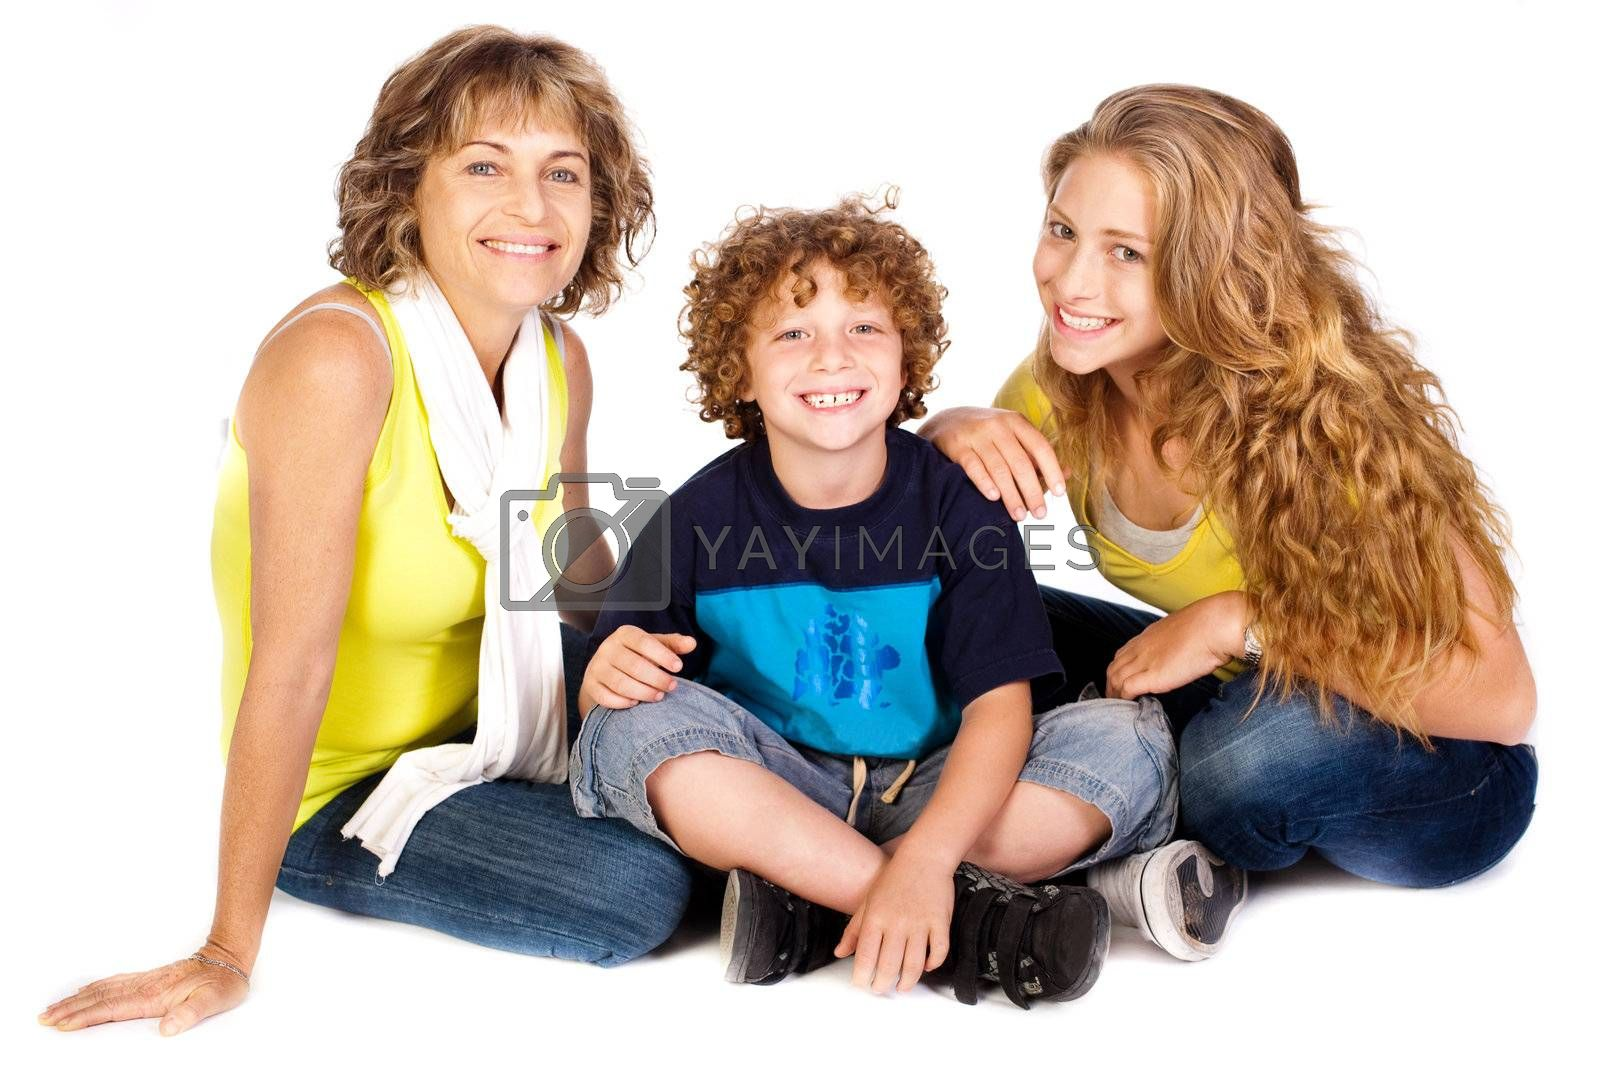 Family having fun on the floor, smiling at camera isolated over the white background.